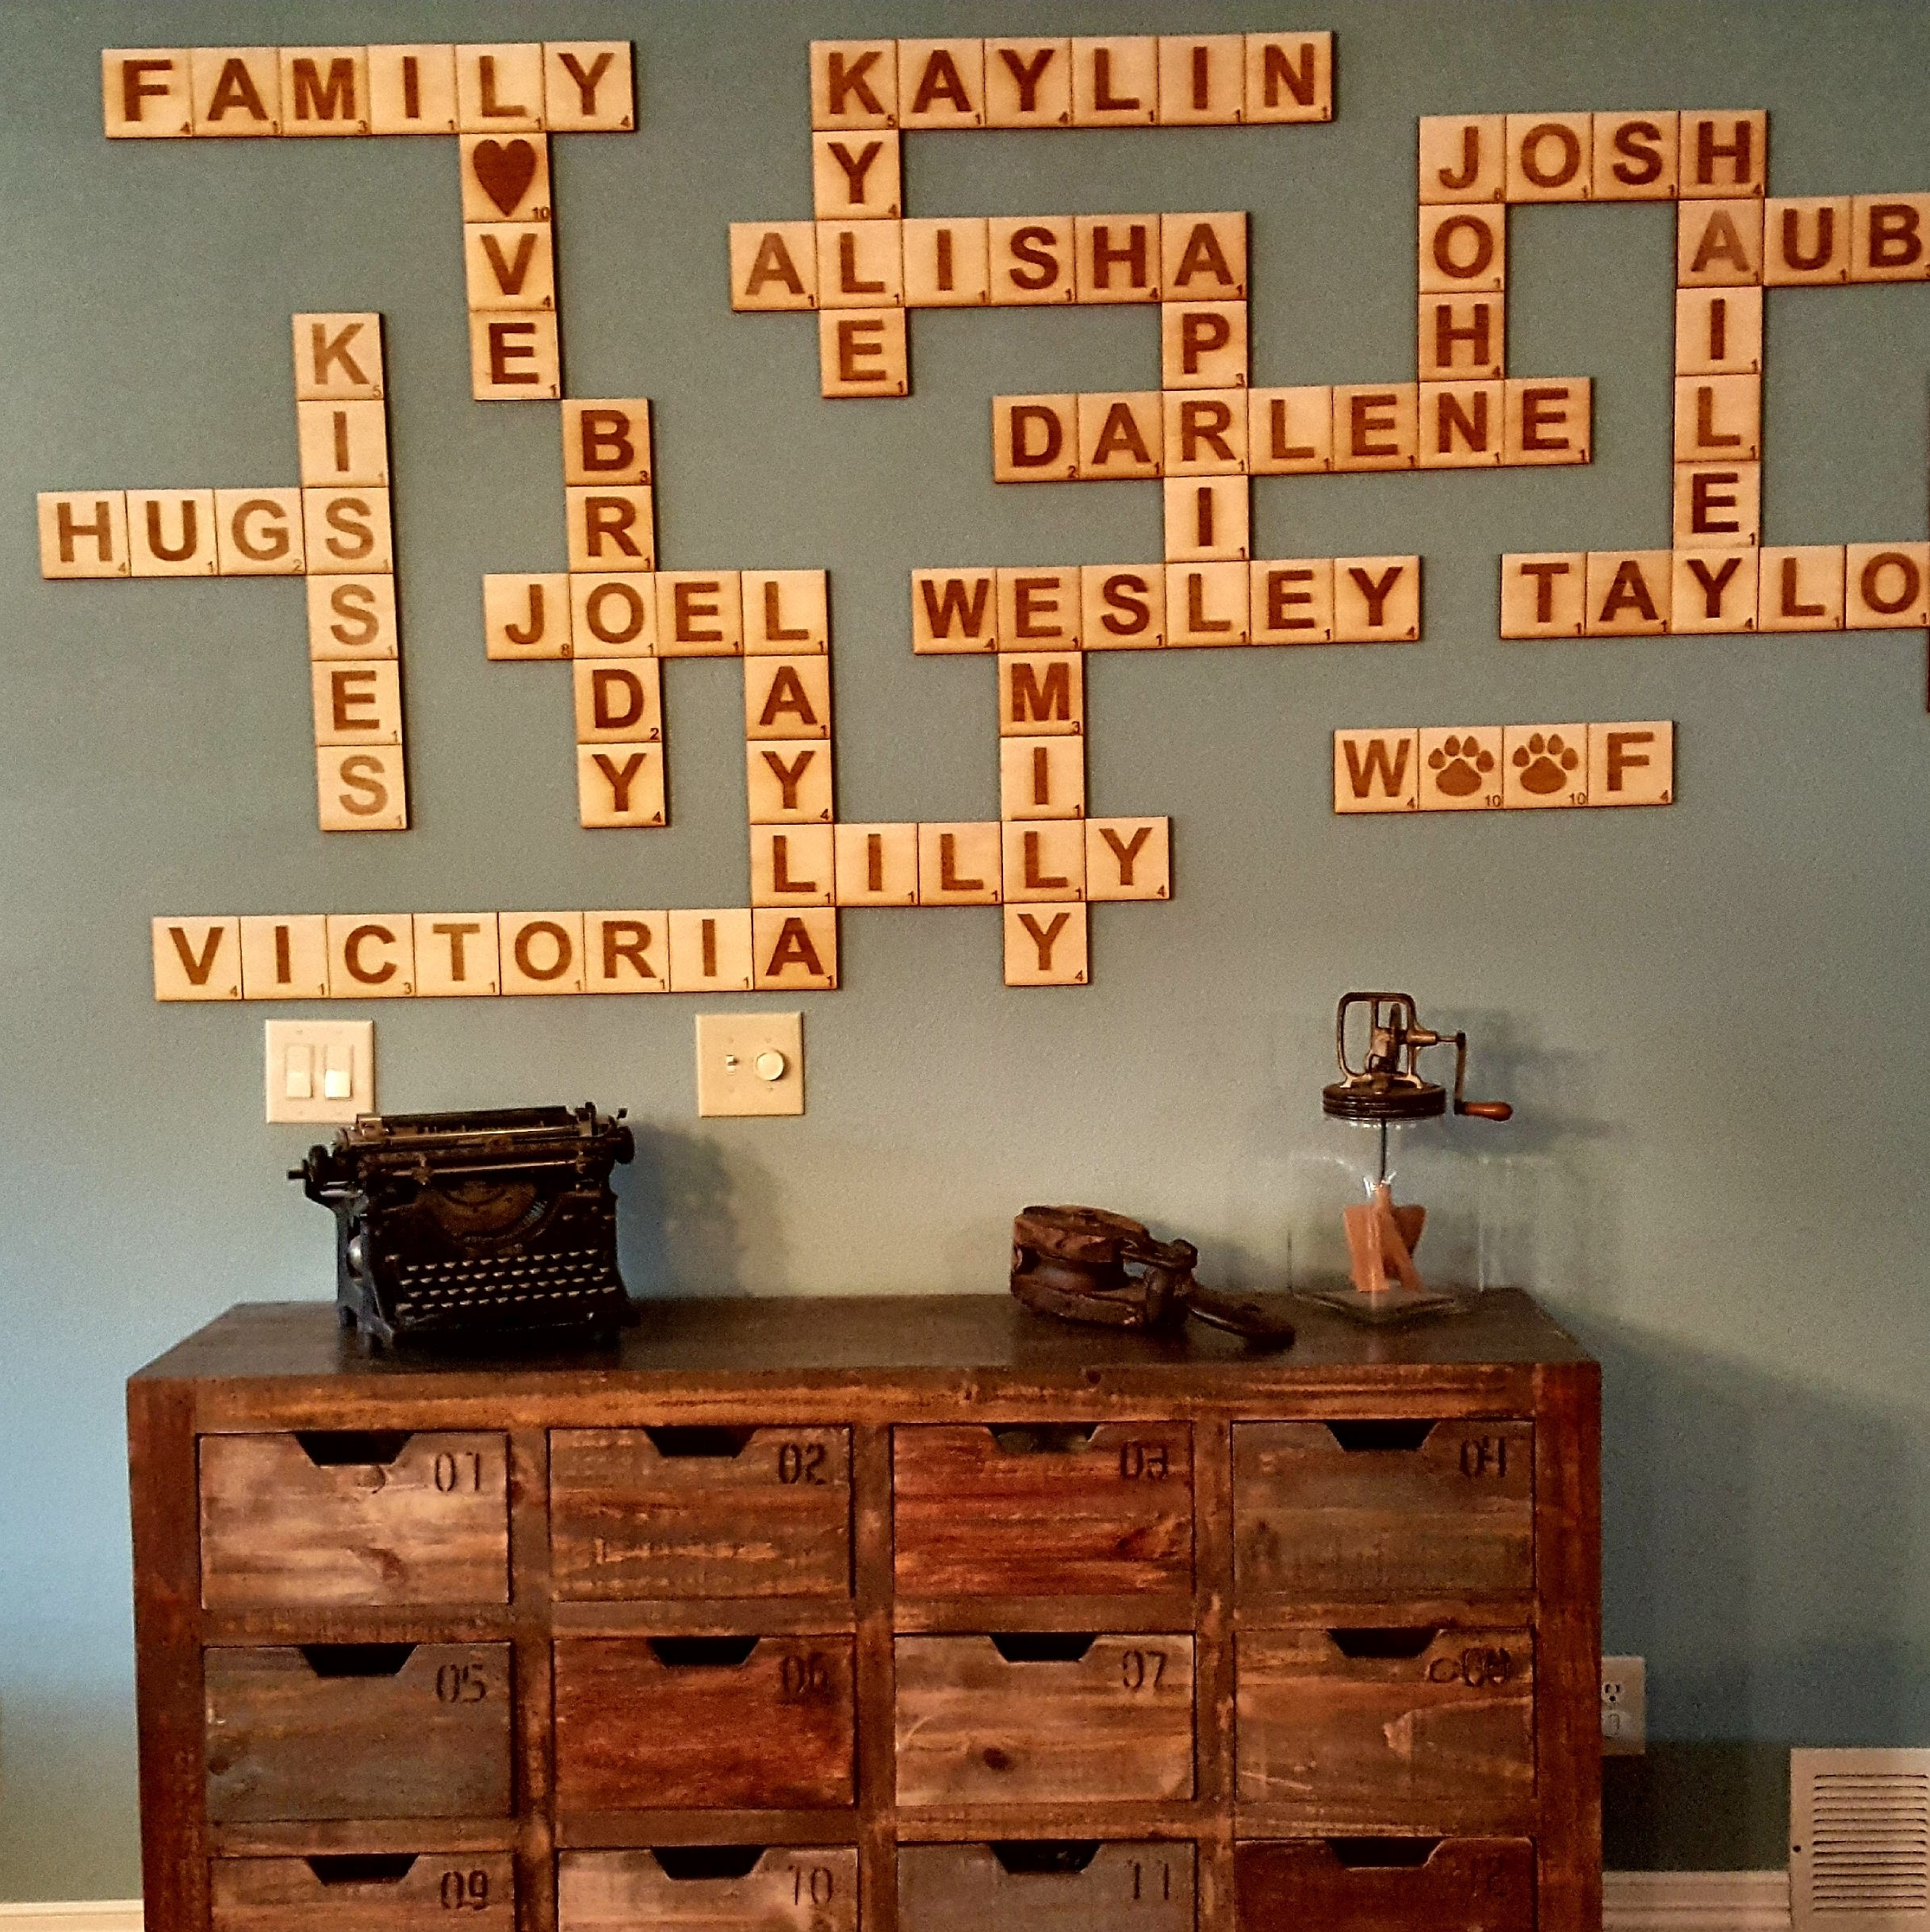 Scrabble Wall Tiles, Scrabble Letters, Scrabble Tiles, Scrabble Wall Inside Most Up To Date Scrabble Wall Art (View 18 of 20)